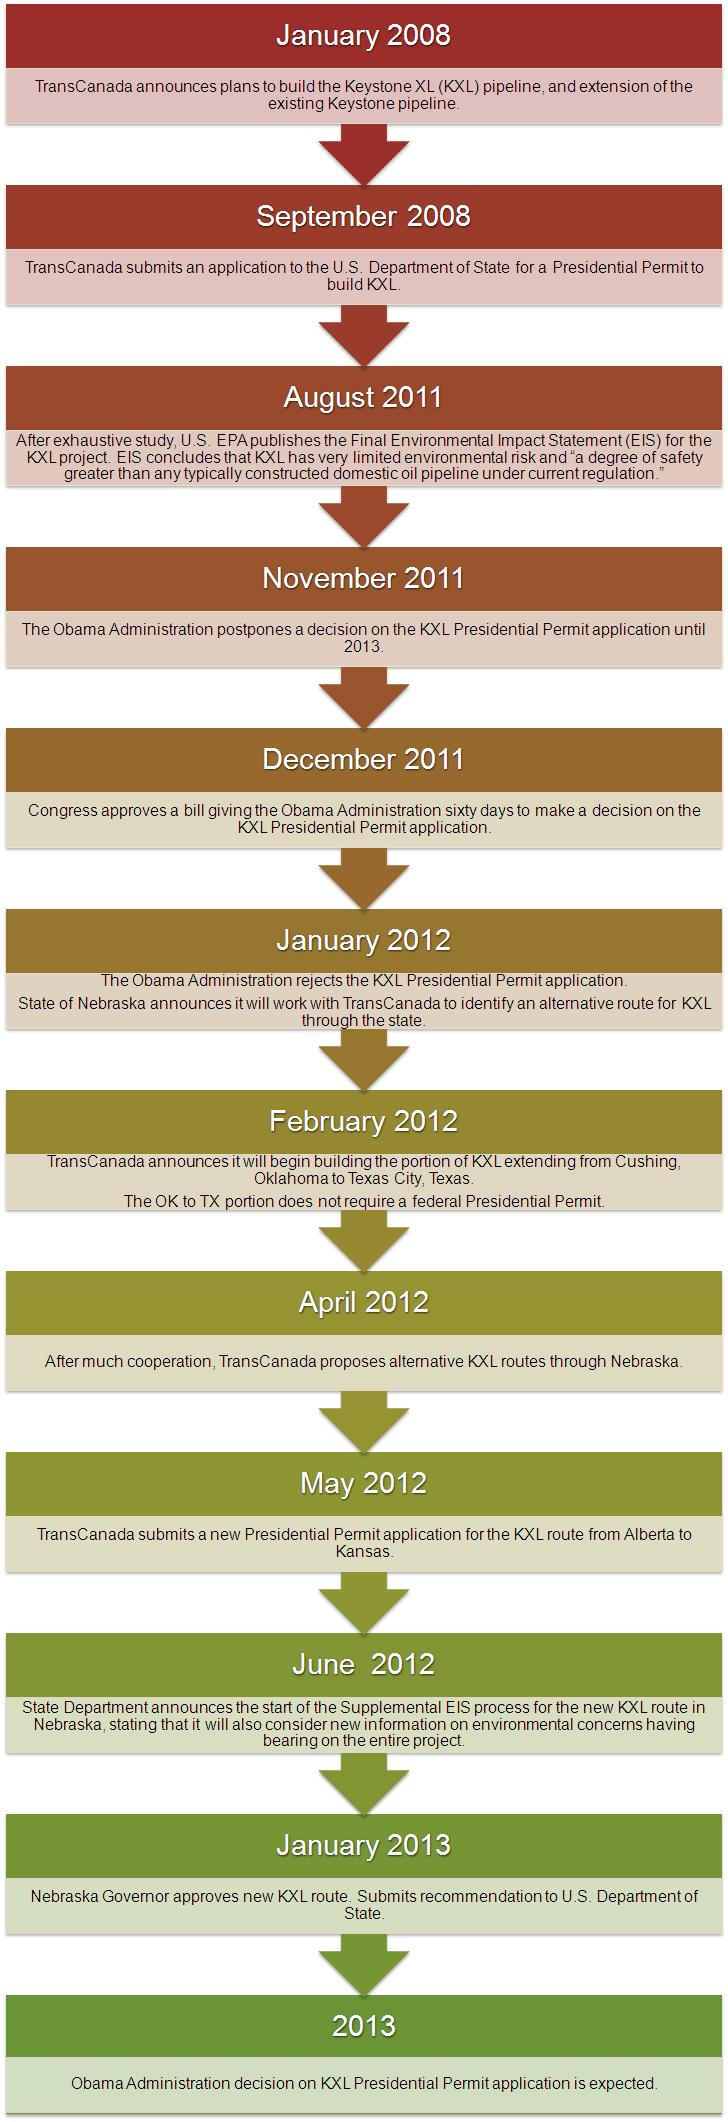 Keystone XL Project Timeline